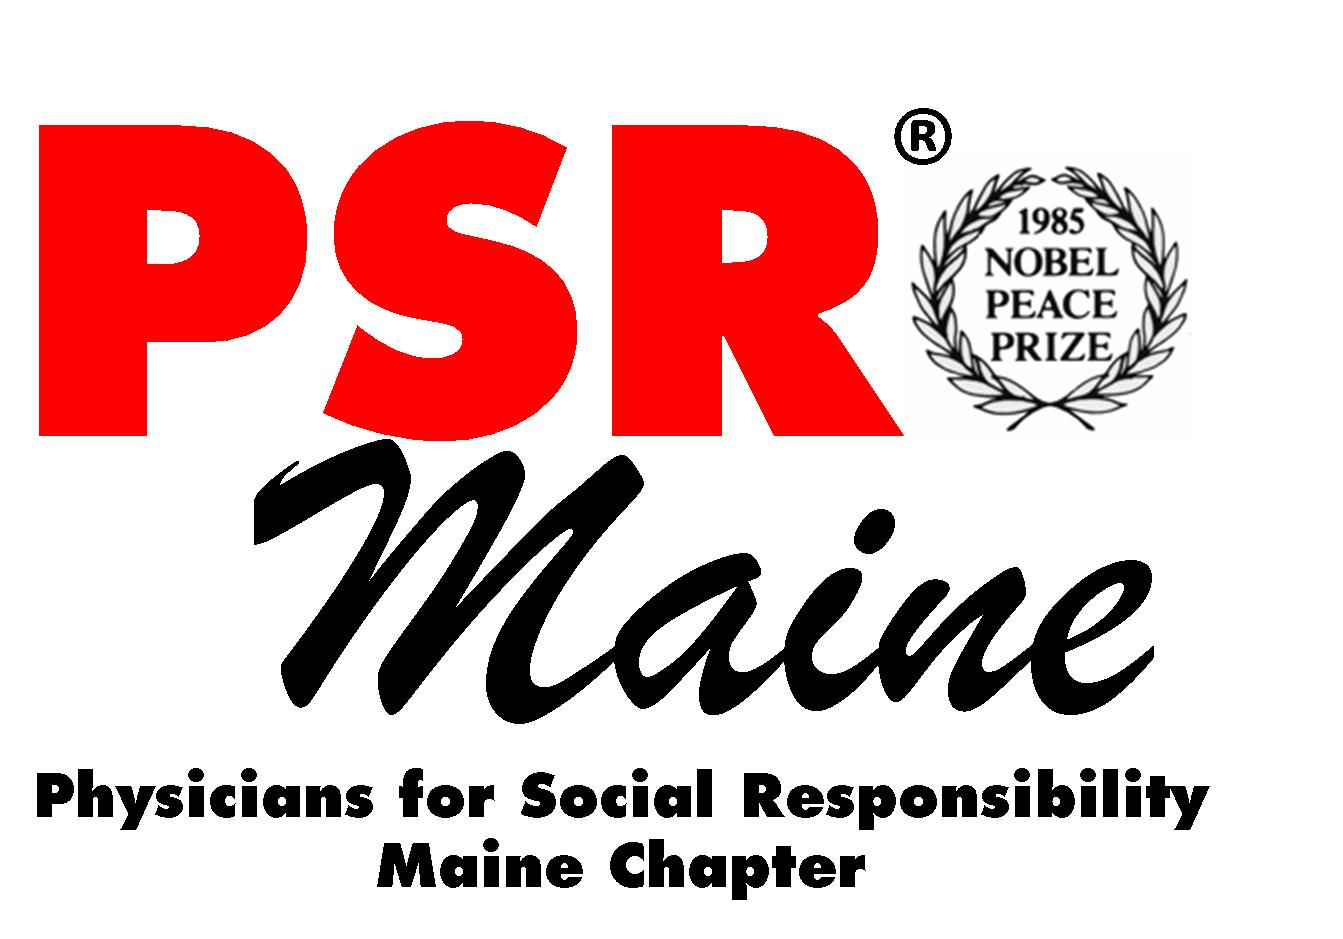 Physicians for Social Responsibility - Maine